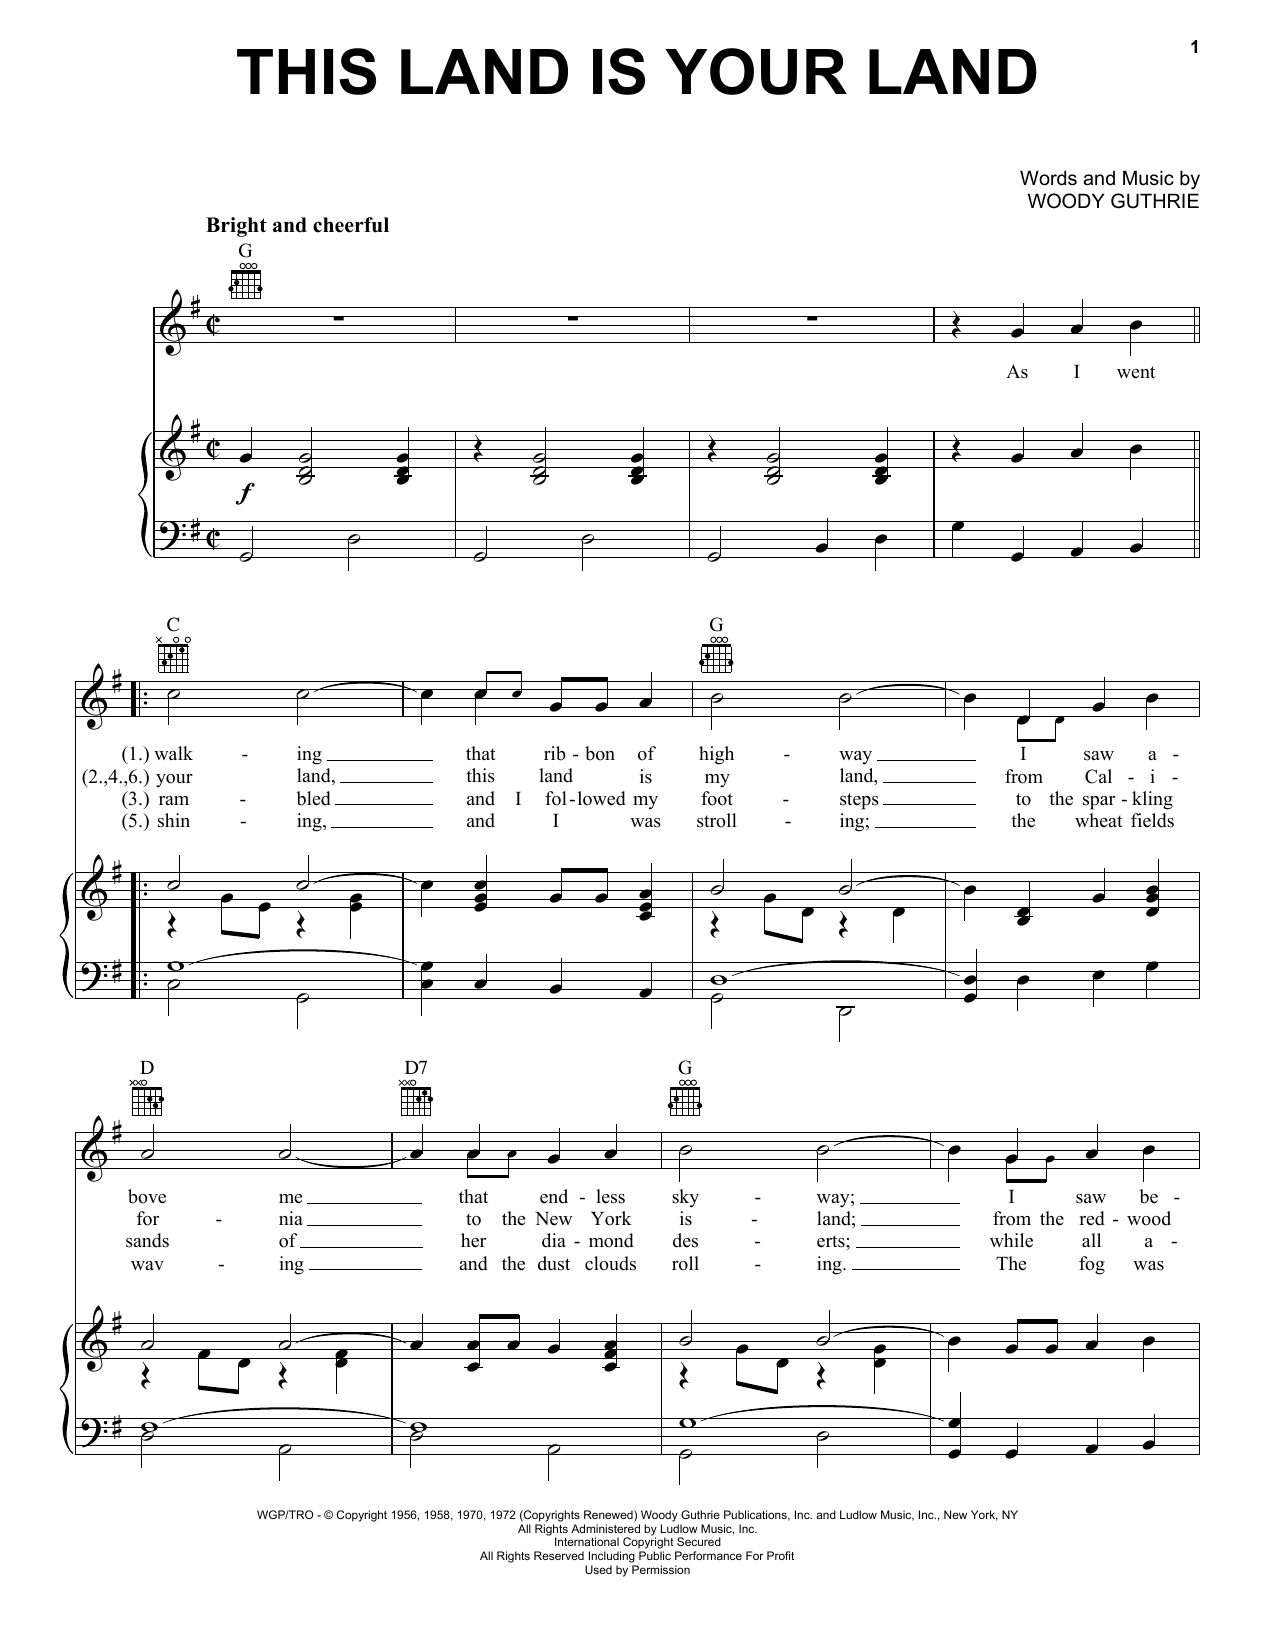 Woody Guthrie This Land Is Your Land sheet music notes and chords